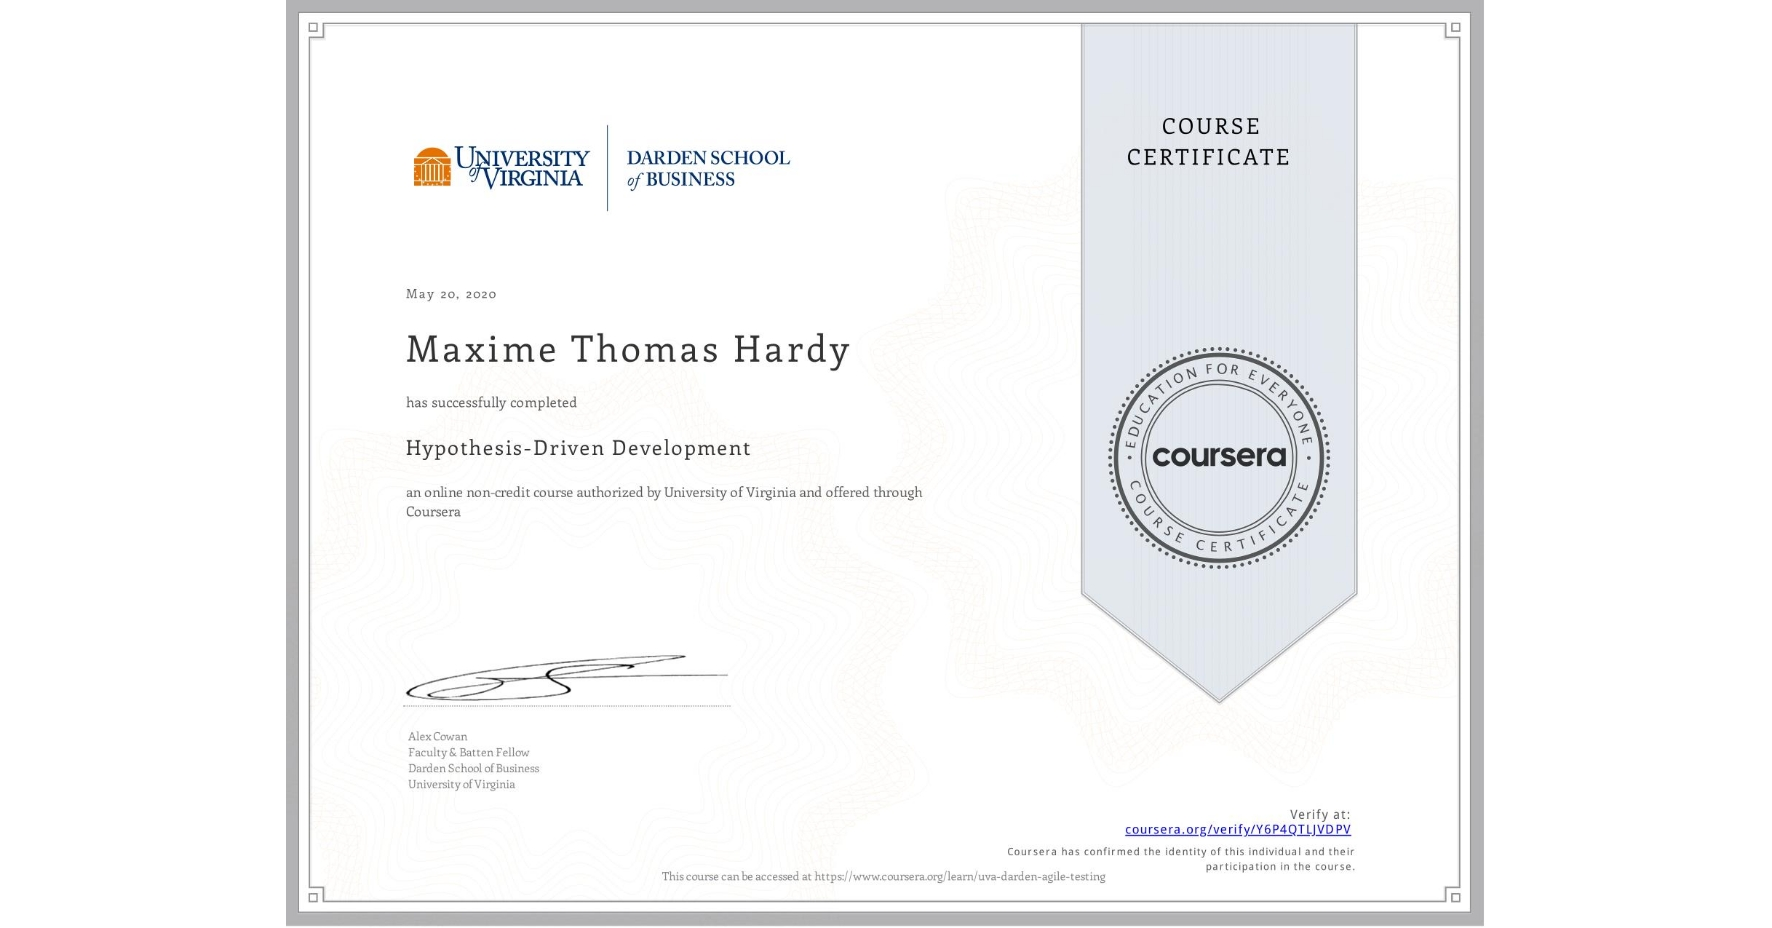 View certificate for Maxime Thomas Hardy, Hypothesis-Driven Development, an online non-credit course authorized by University of Virginia and offered through Coursera